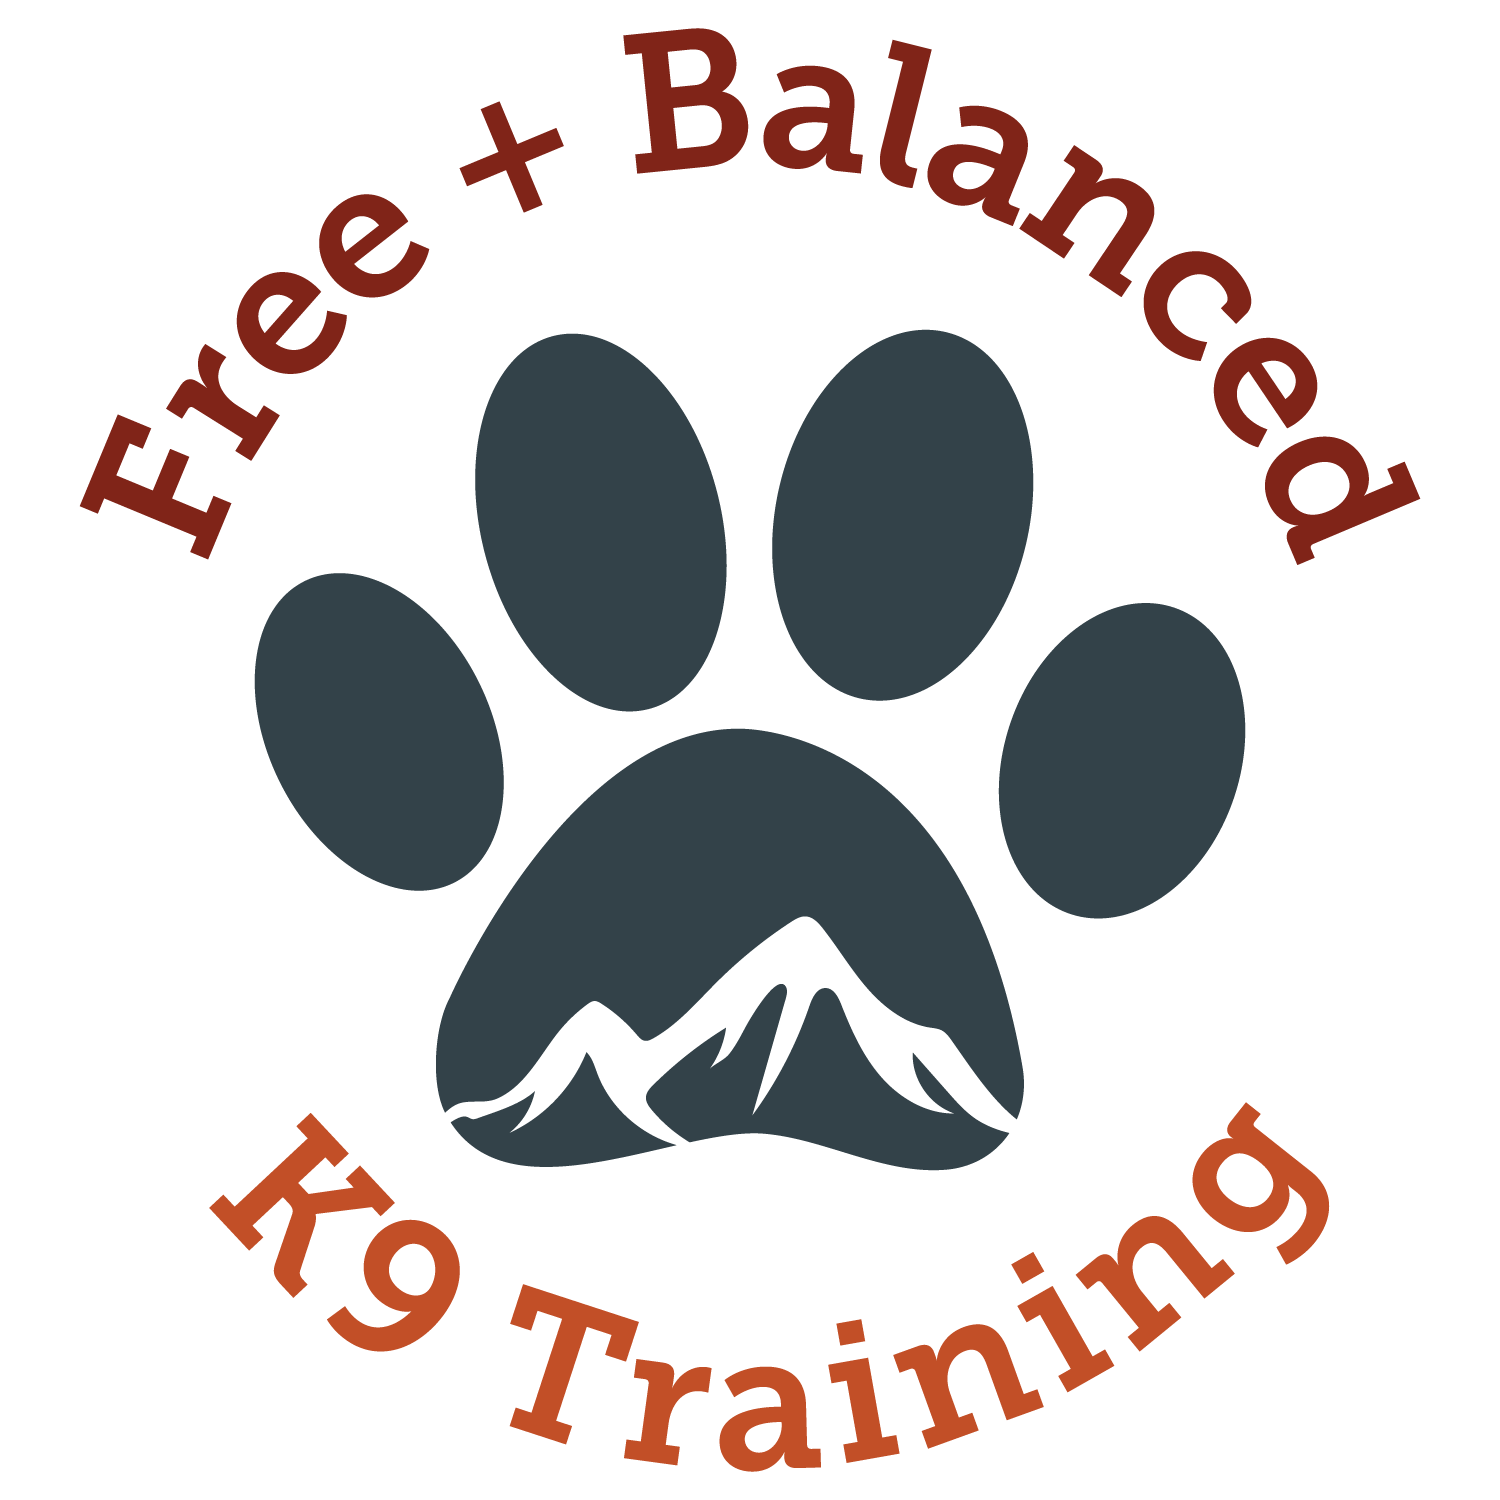 Free + Balanced K9 Training